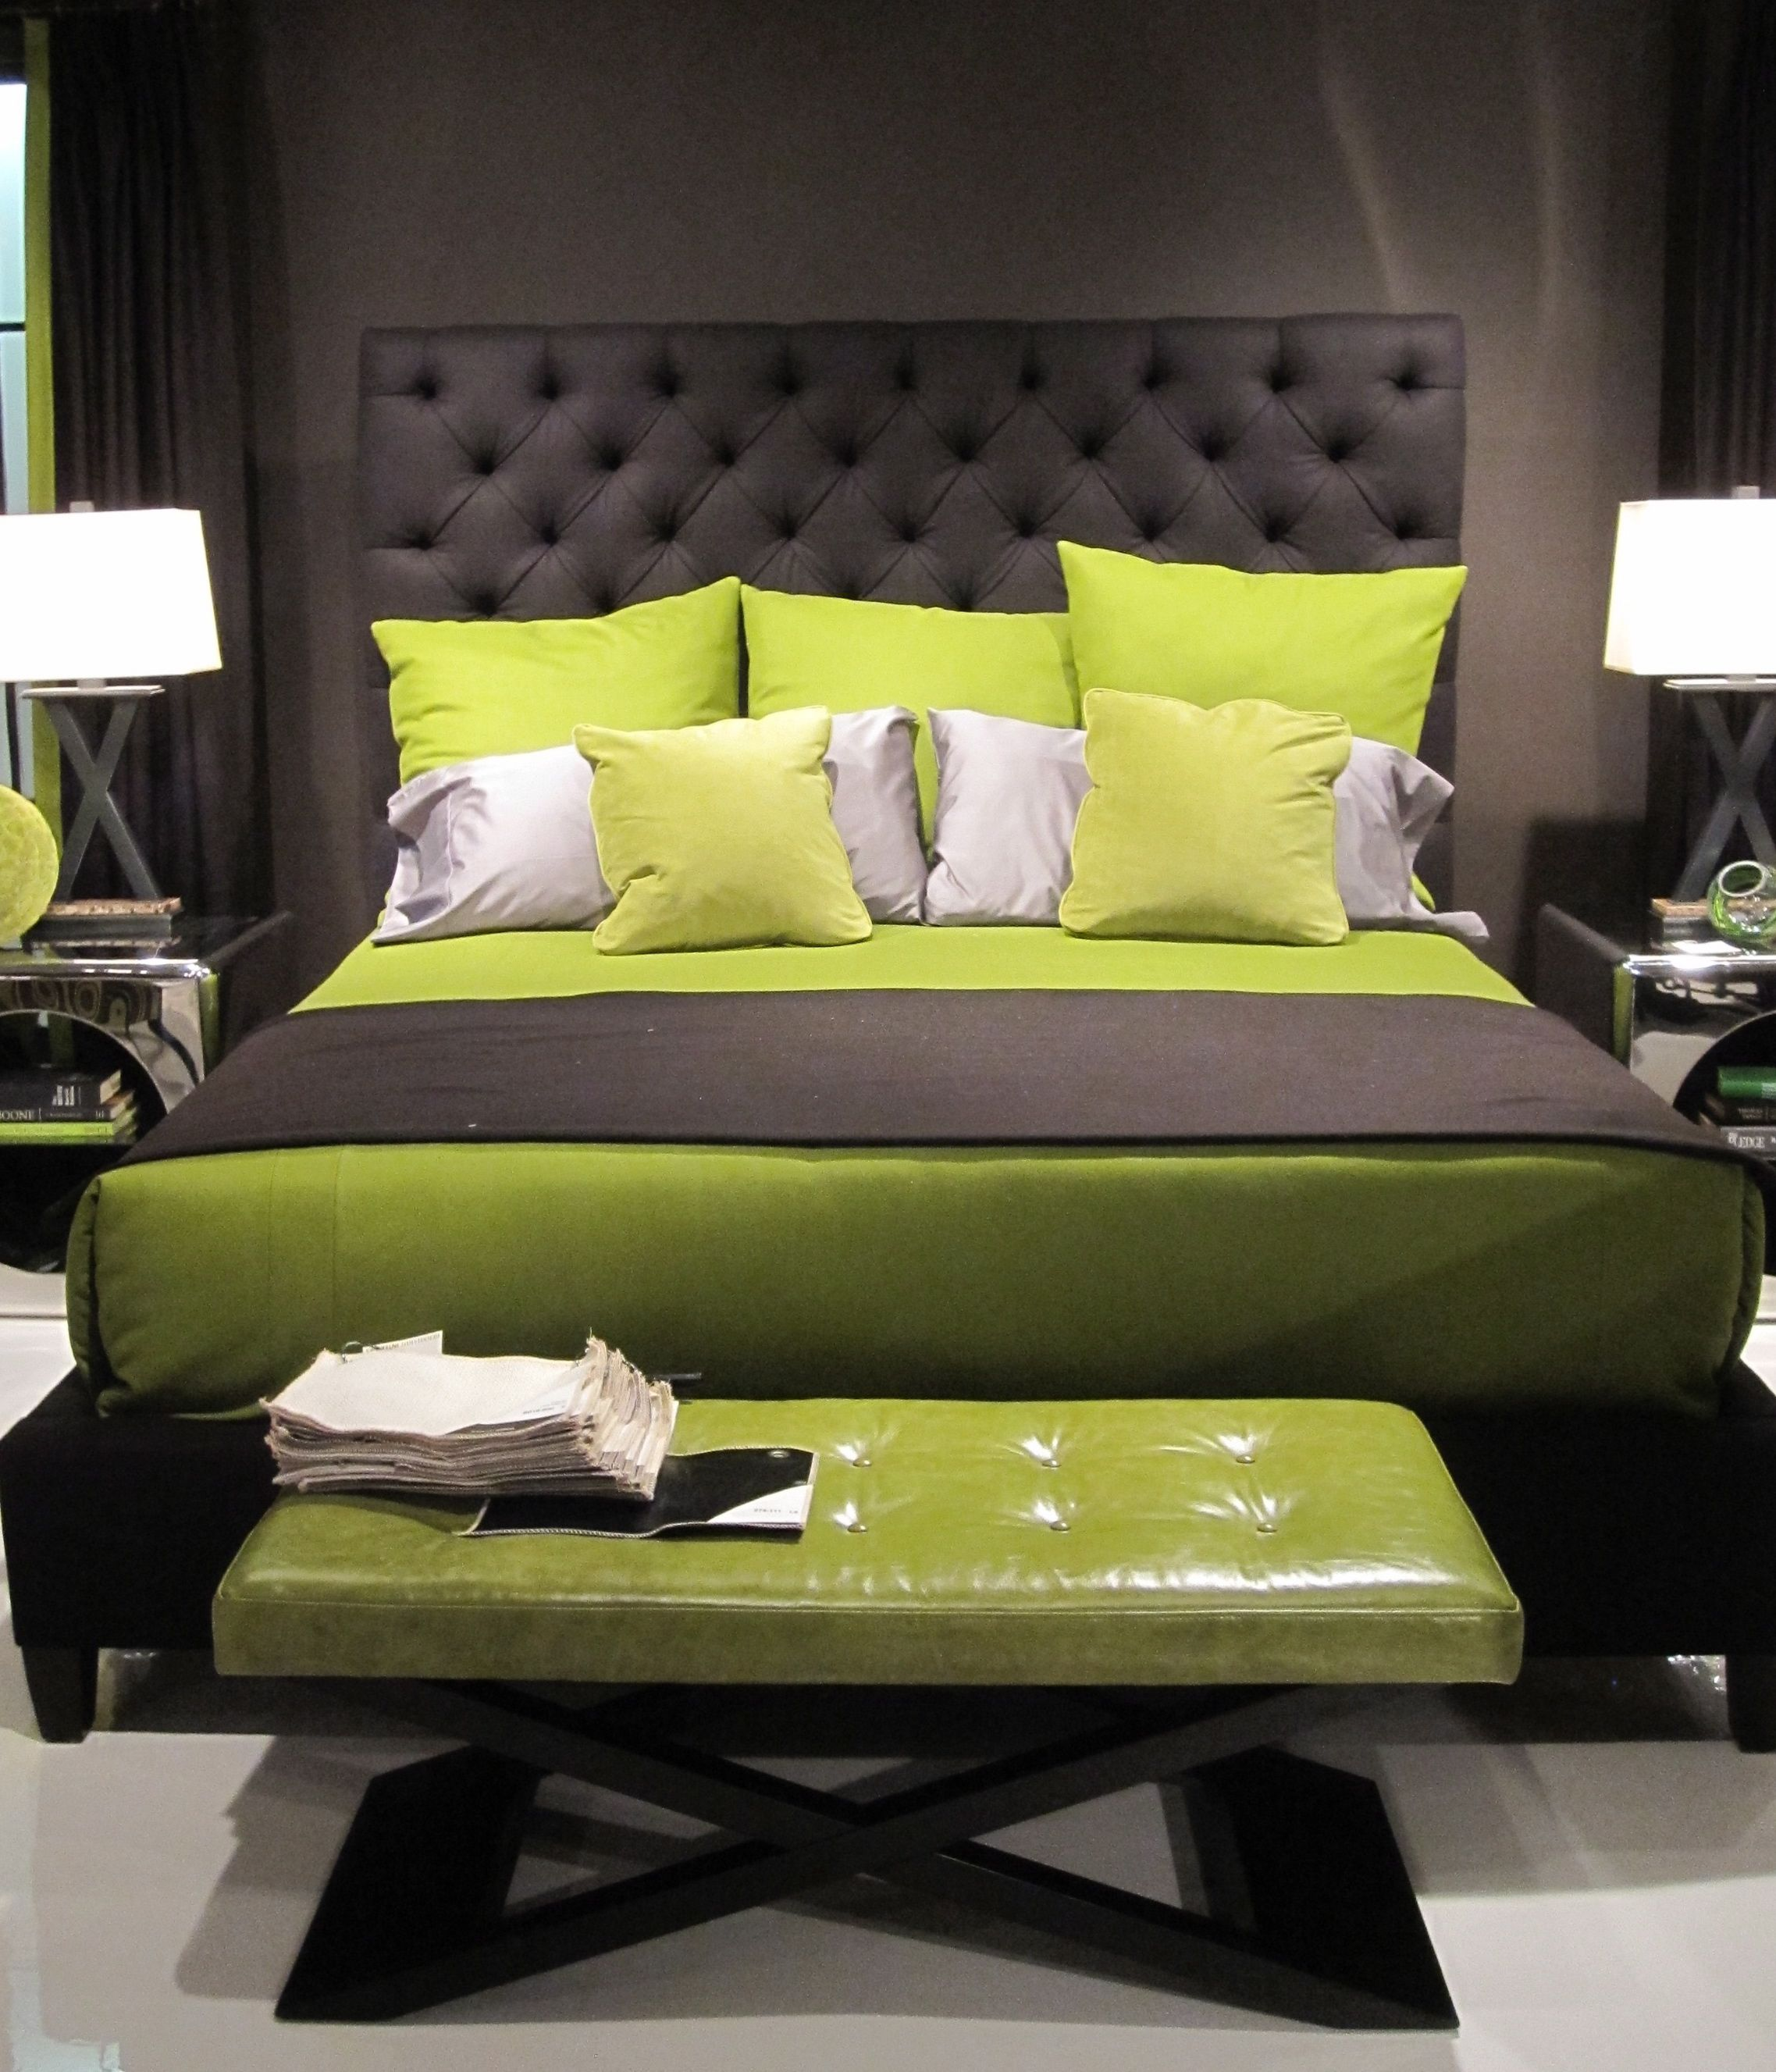 Black and white bedrooms with color accents - Upholstered Gray Bed Styled With Greens And Stainless Accent Tables